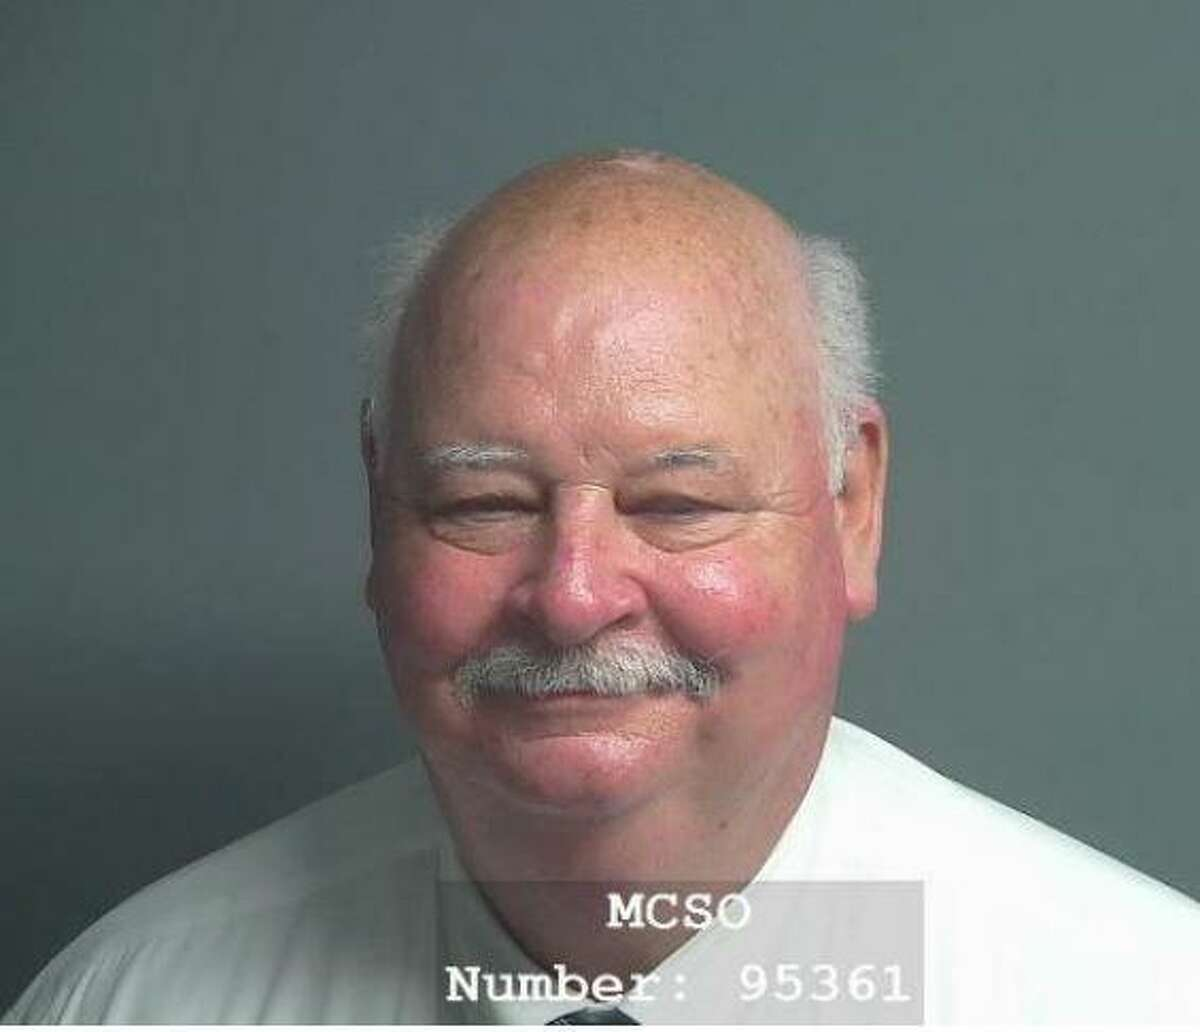 Gary Vincent, 64, of The Woodlands, pleaded guilty to abuse of official capacity, a Class A misdemeanor. Vincent was previously chief at the Magnolia Volunteer Fire Department.